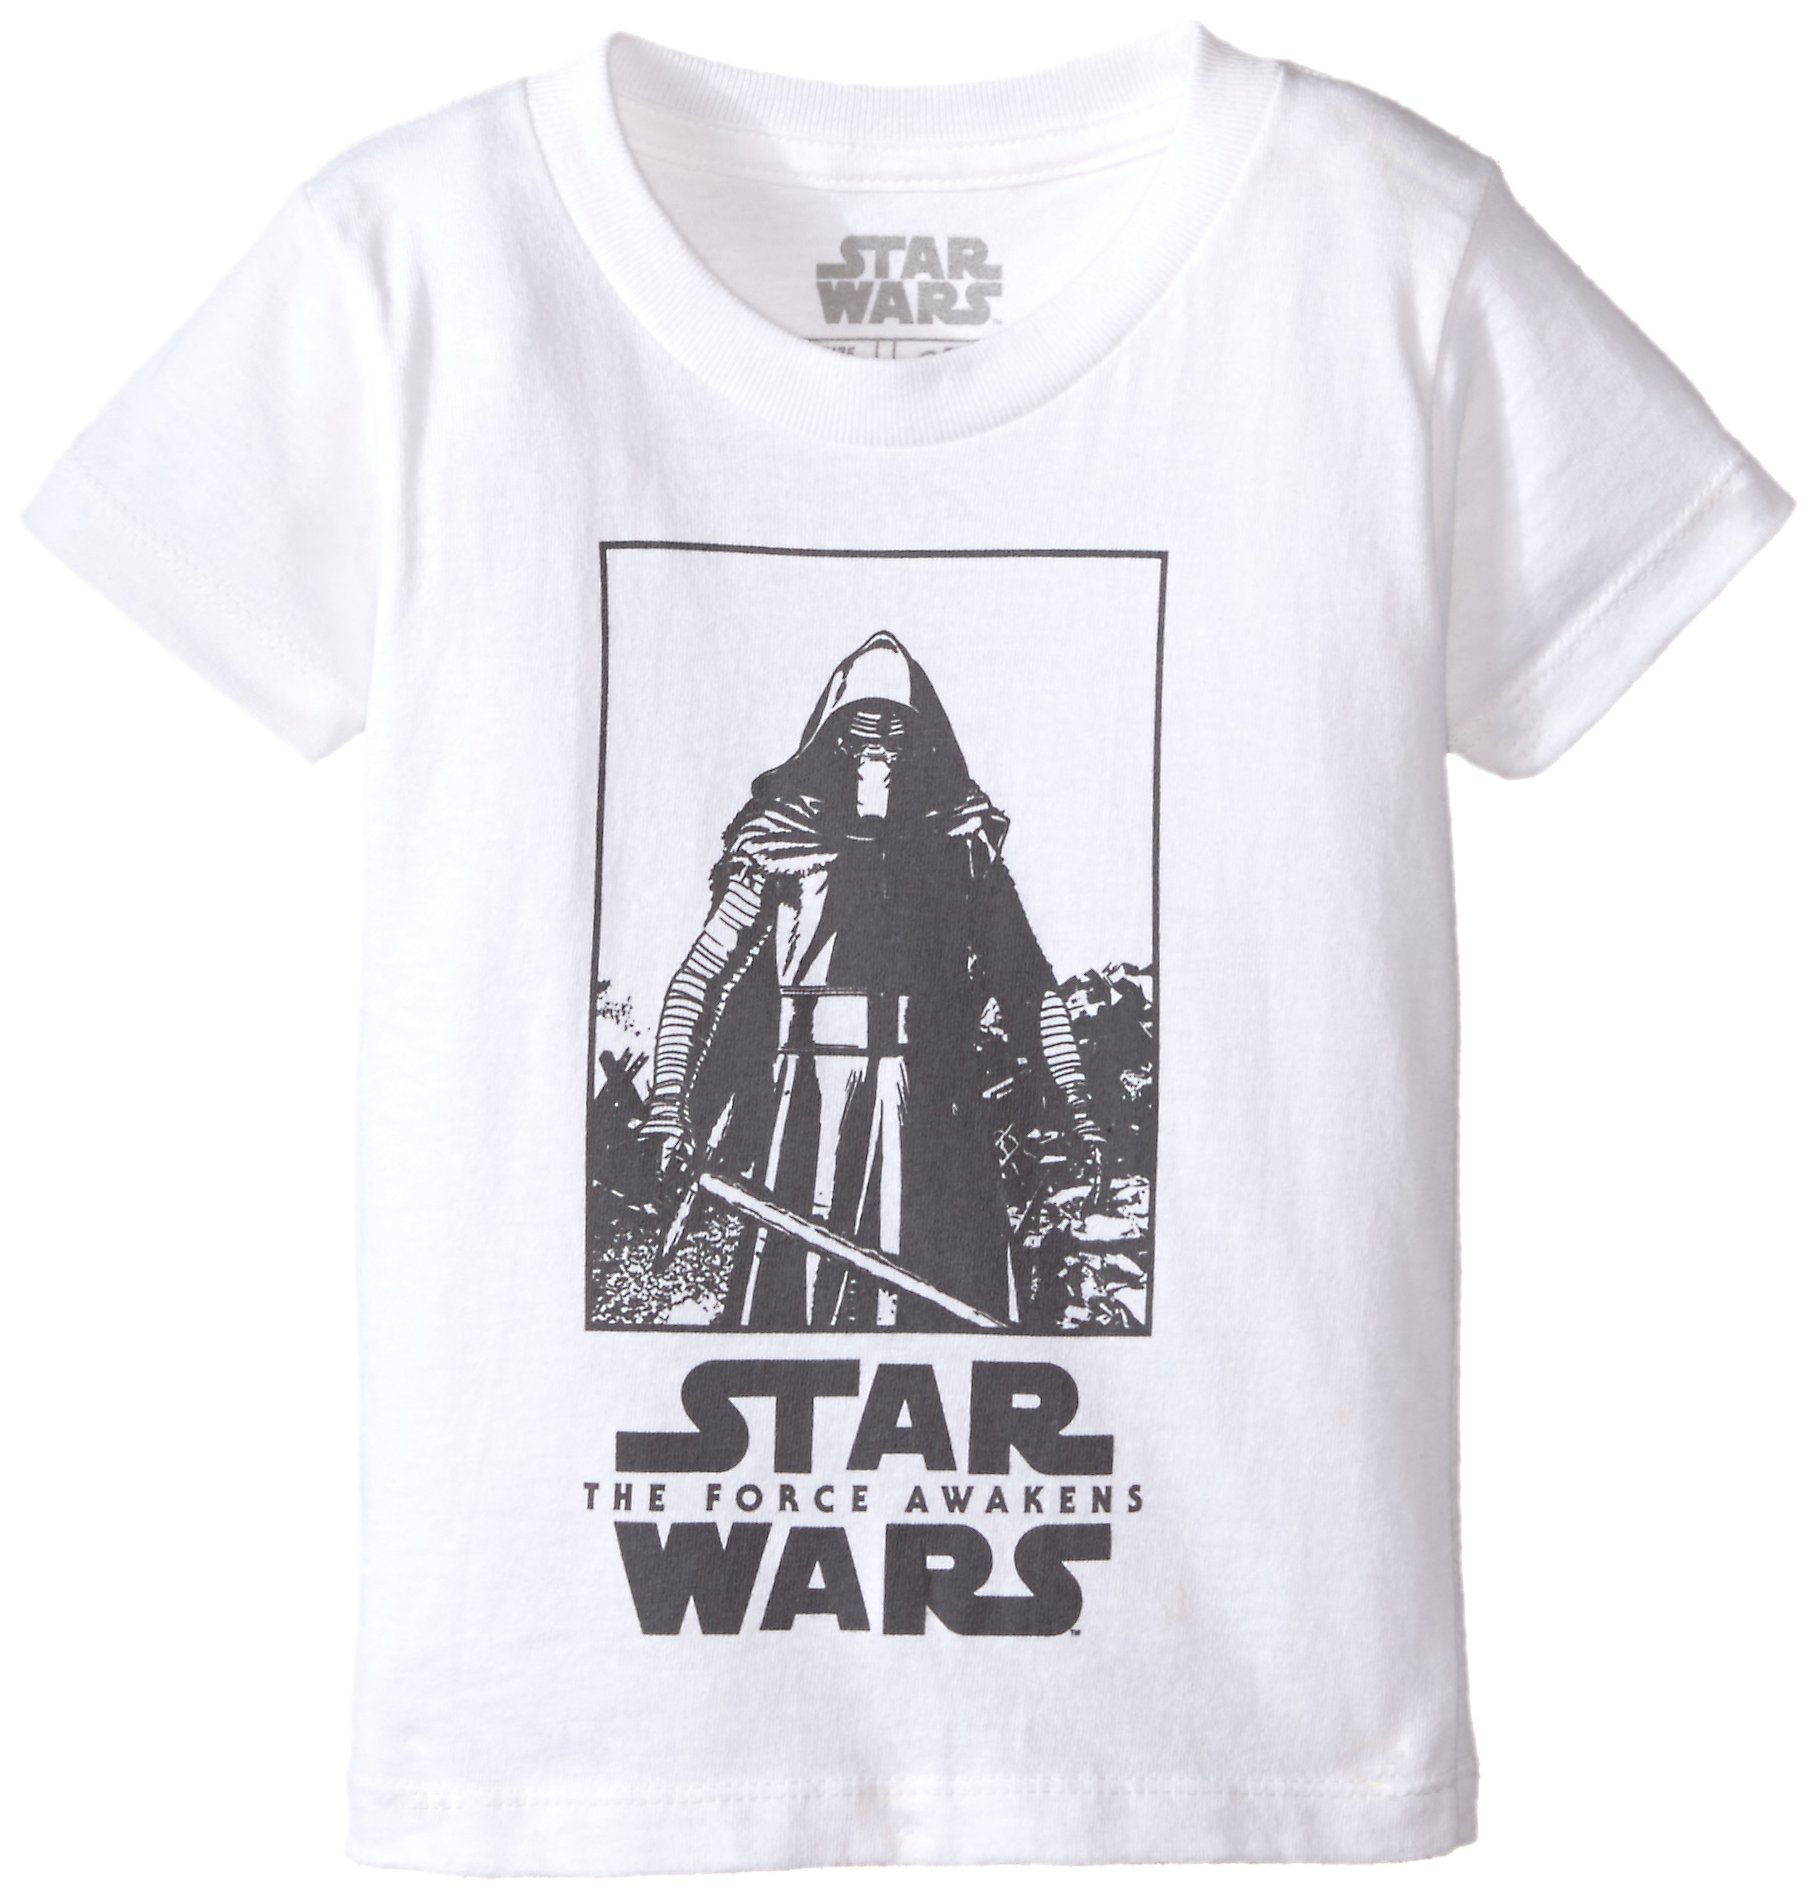 Star Wars Big Boys' T-Shirt, Fresh White, Large/14-16 by Star Wars (Image #1)